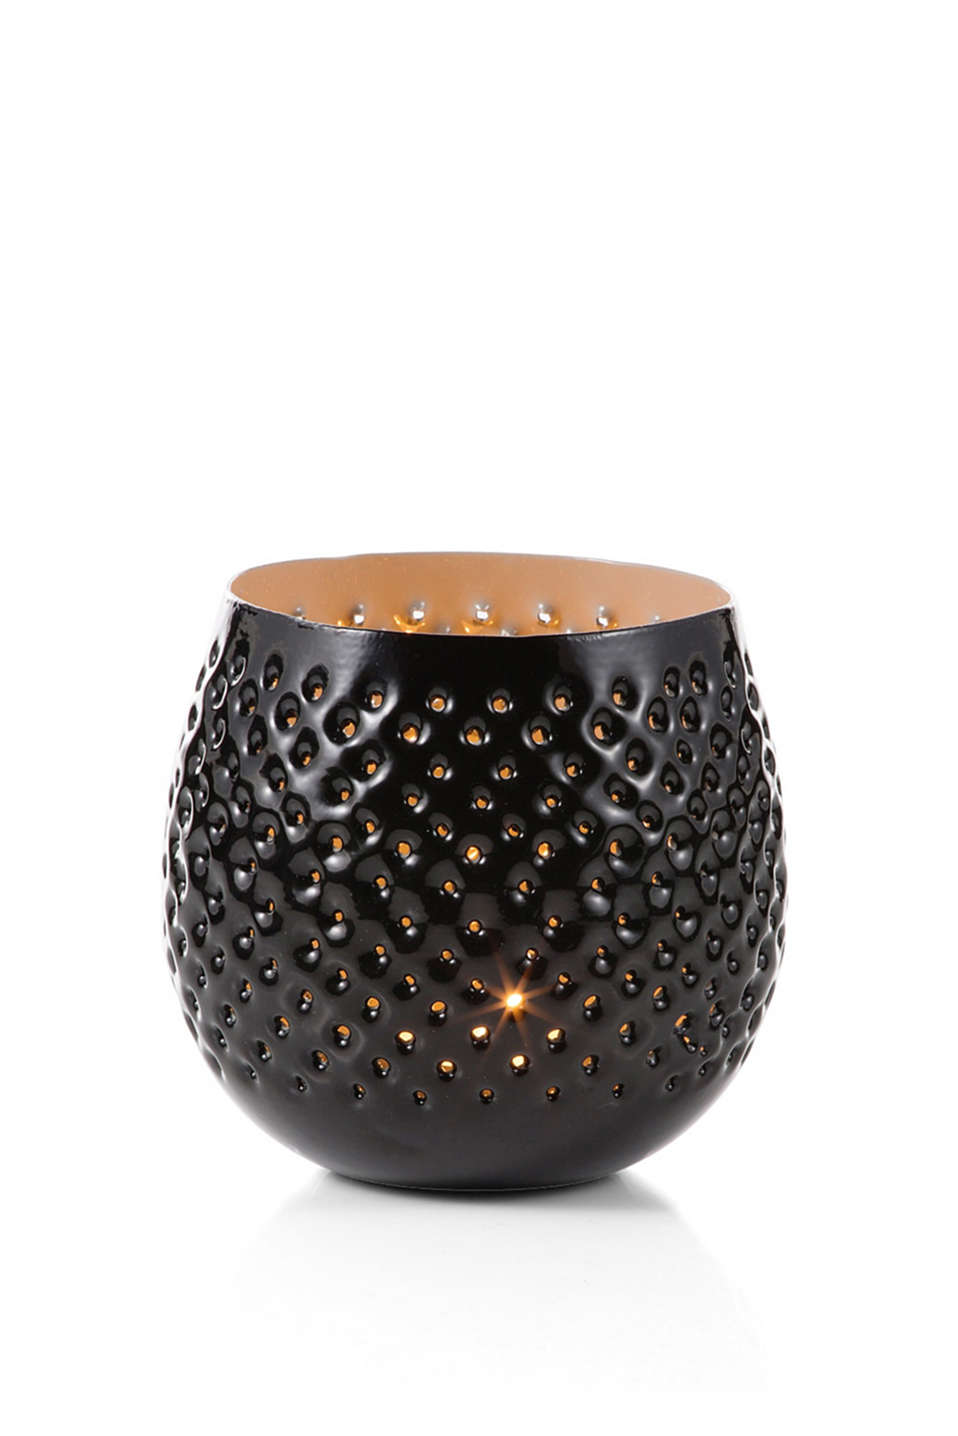 with a fine perforated pattern, 10 cm high